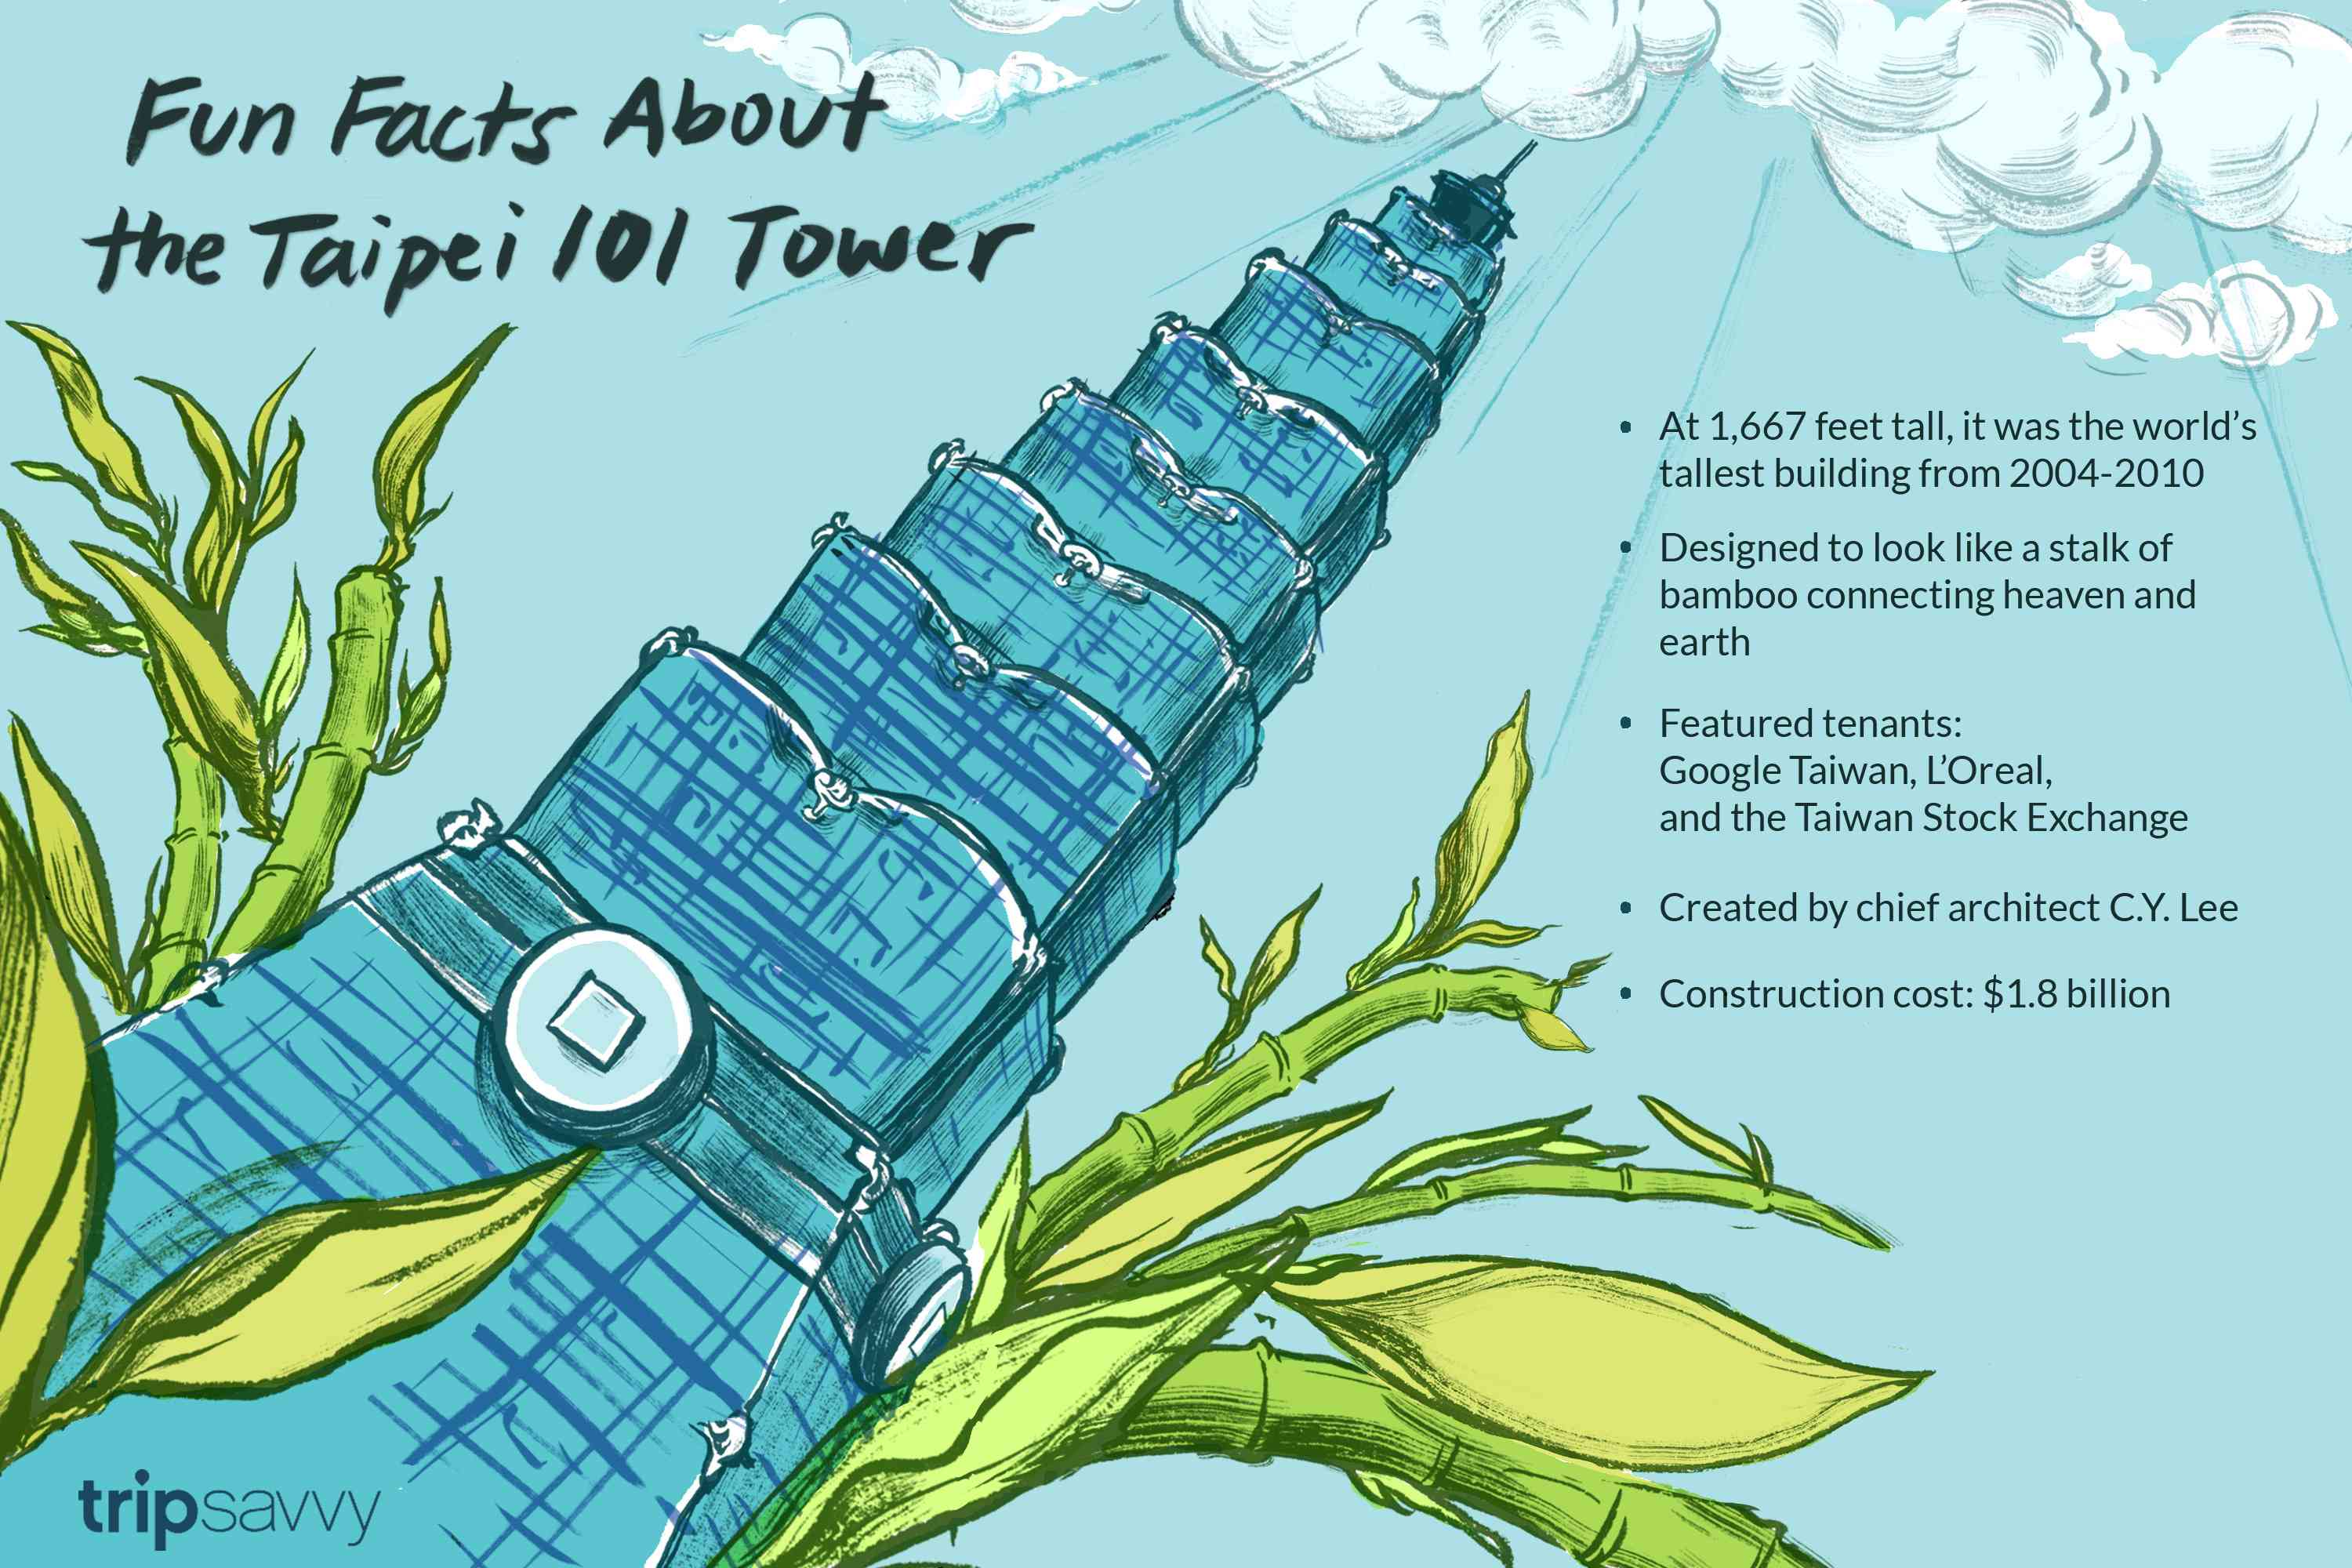 Overview of Teipei 101 Tower